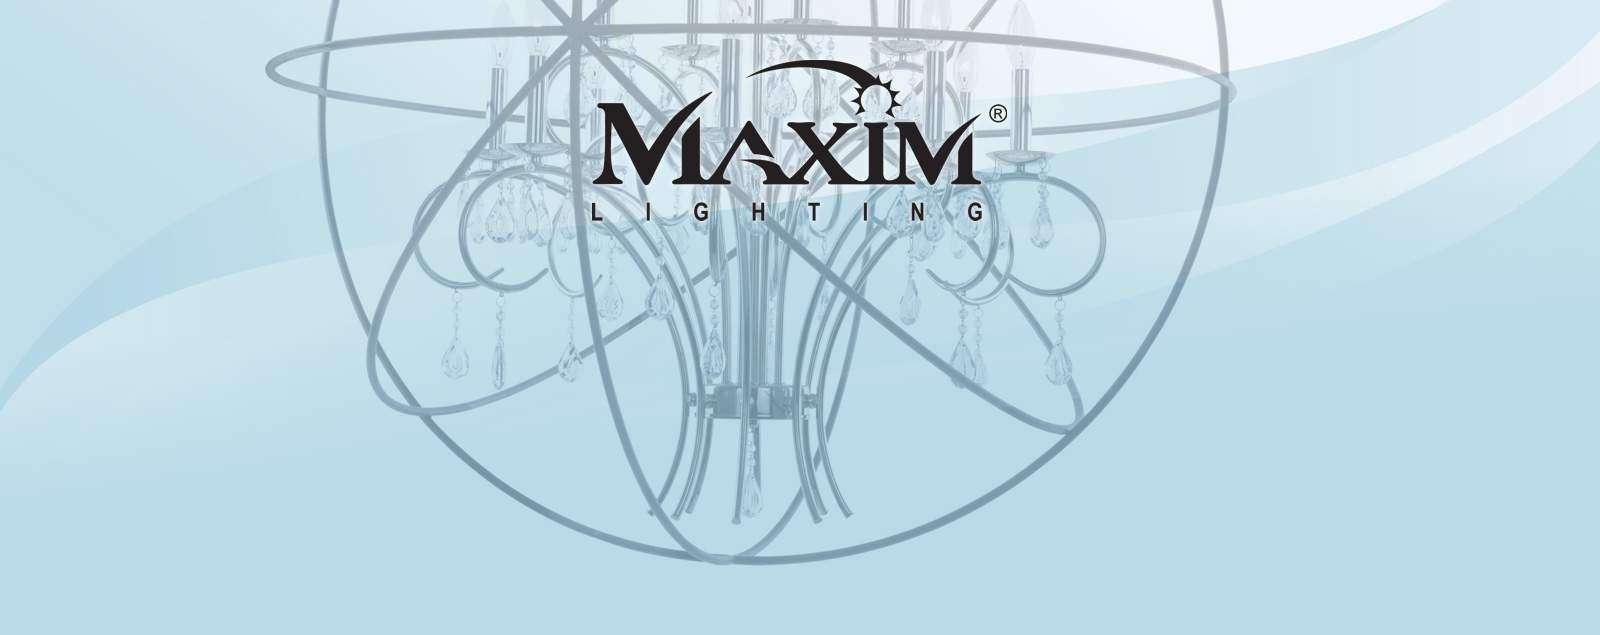 Maxim Lighting - Chandeliers - Outdoor Flush Mounts - Deck Lights